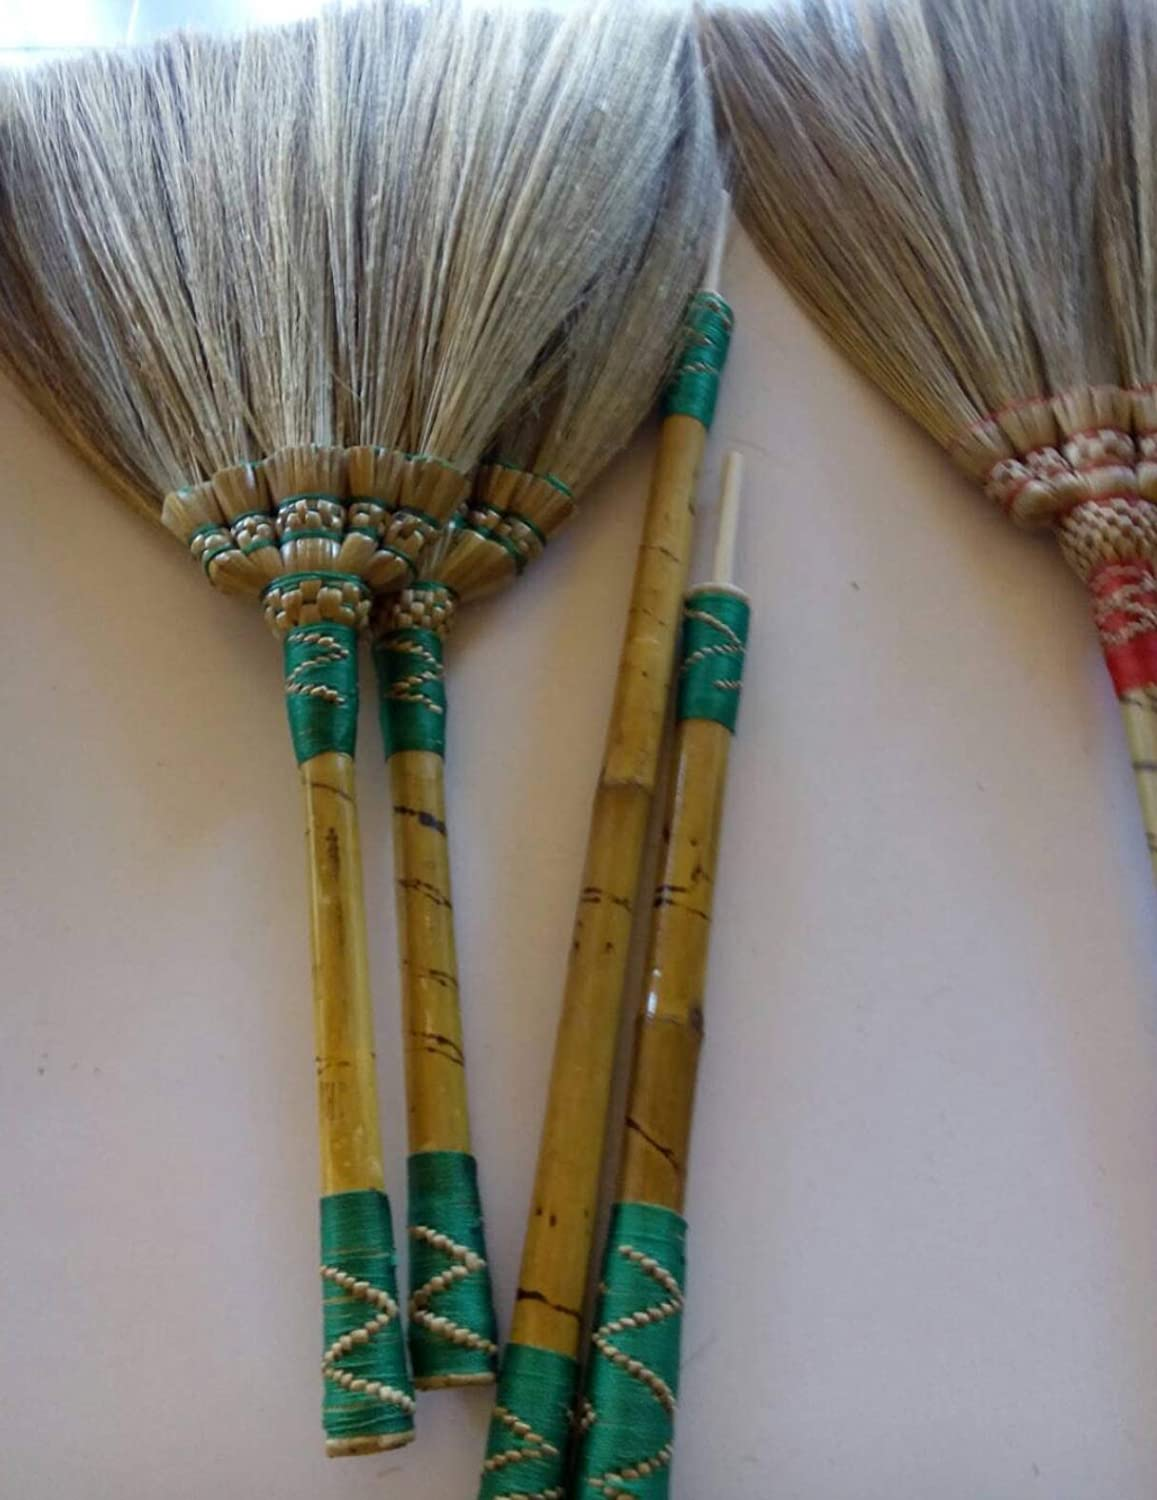 2 in 1 Natural Grass Broom Dustpan Vintage Style Thai Broom Broomstick Bamboo Stick Handle Witch Broom Handmade Broom Housewarming Gift Tradition Thailand SKENNOVA